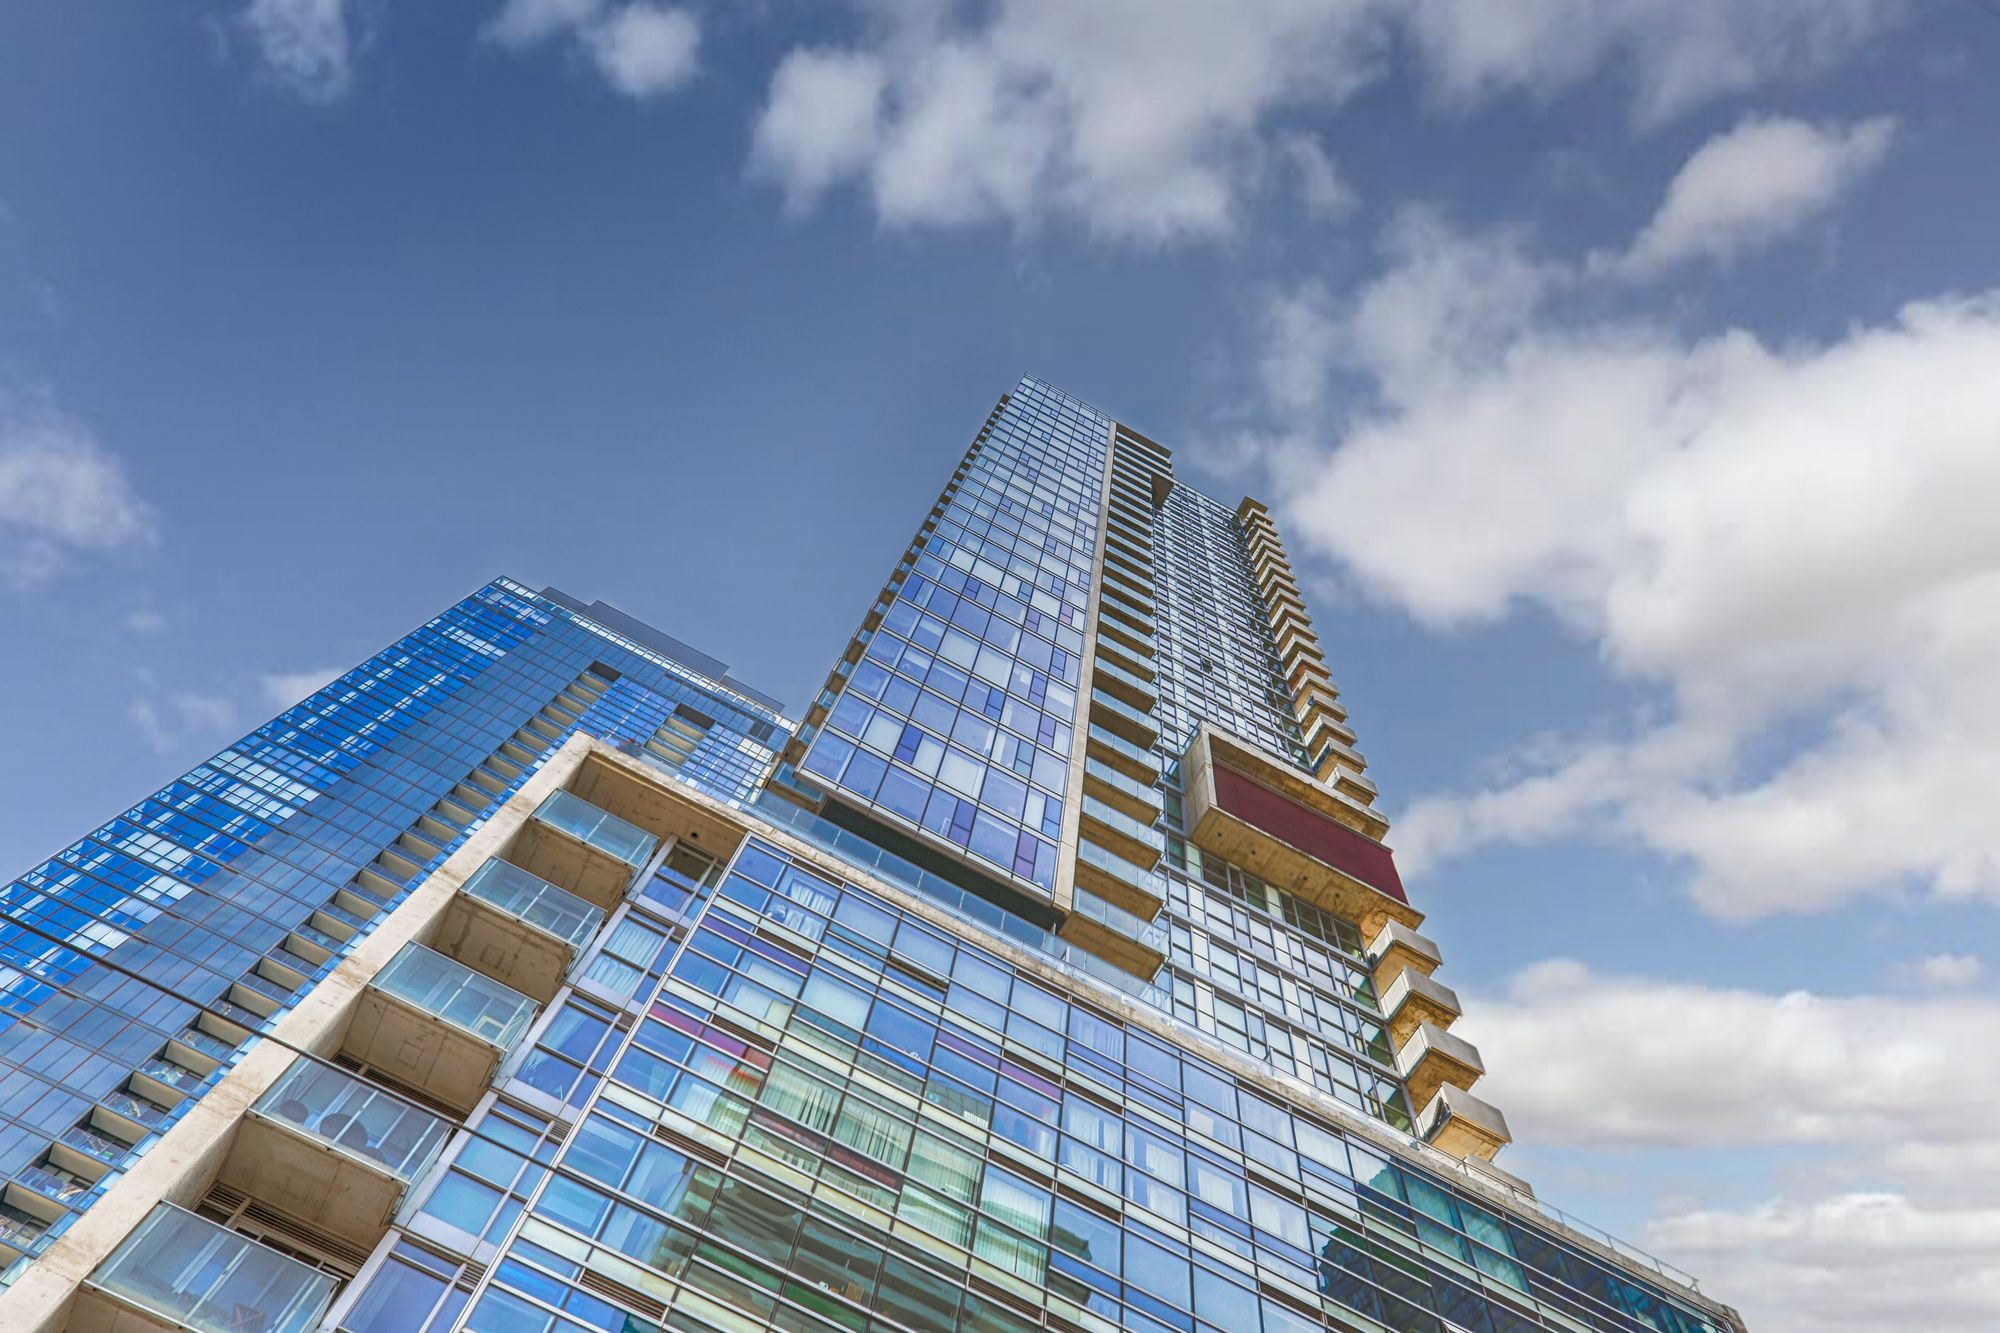 375 King St W. This condo at M5V Condos is located in  Downtown, Toronto - image #2 of 4 by Strata.ca